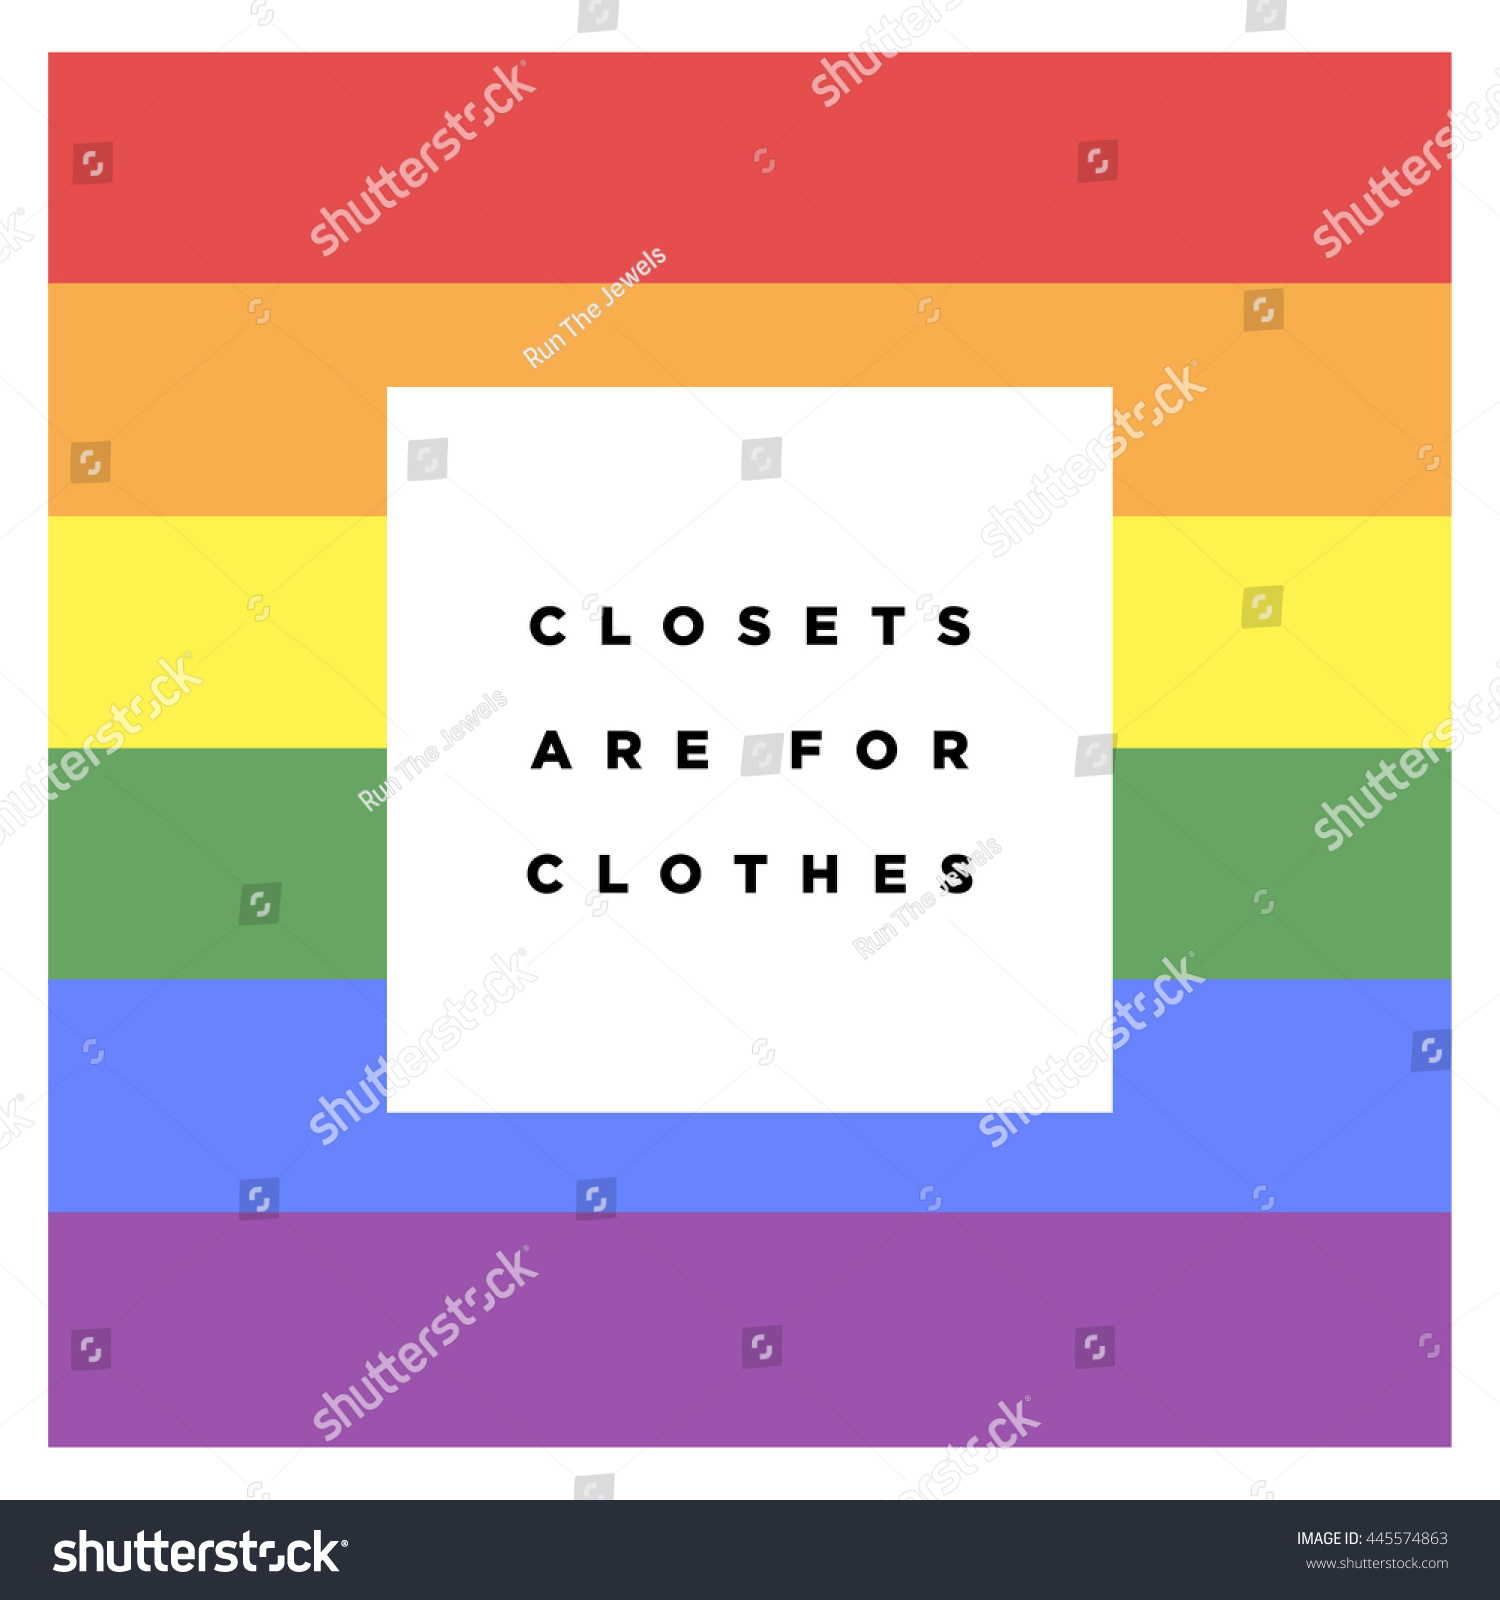 closet t tikissgirls shirts collections are mk clothes closets for by